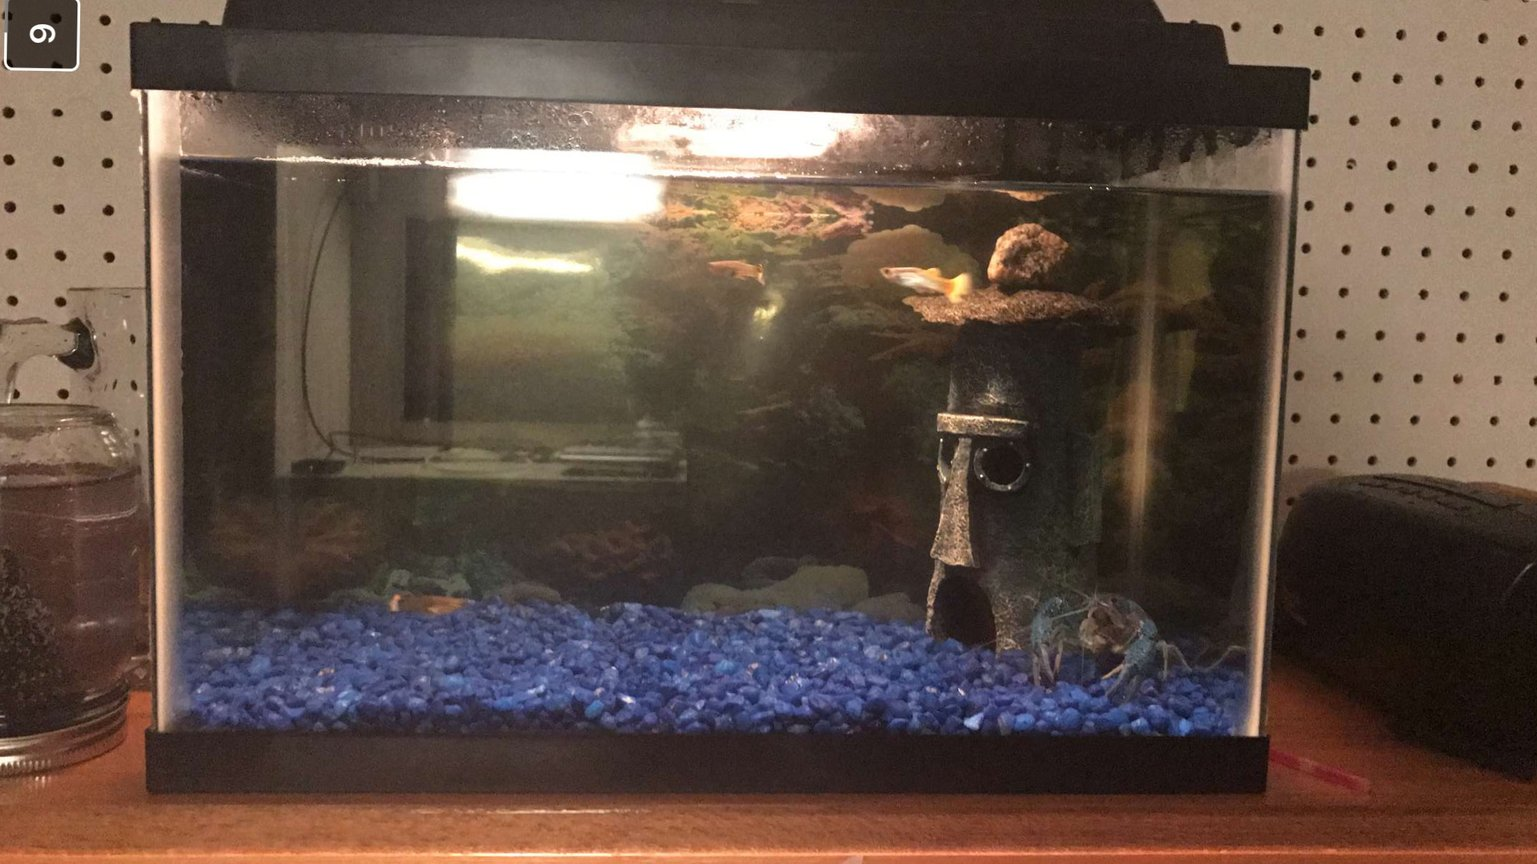 5 gallons freshwater fish tank (mostly fish and non-living decorations) - My tank